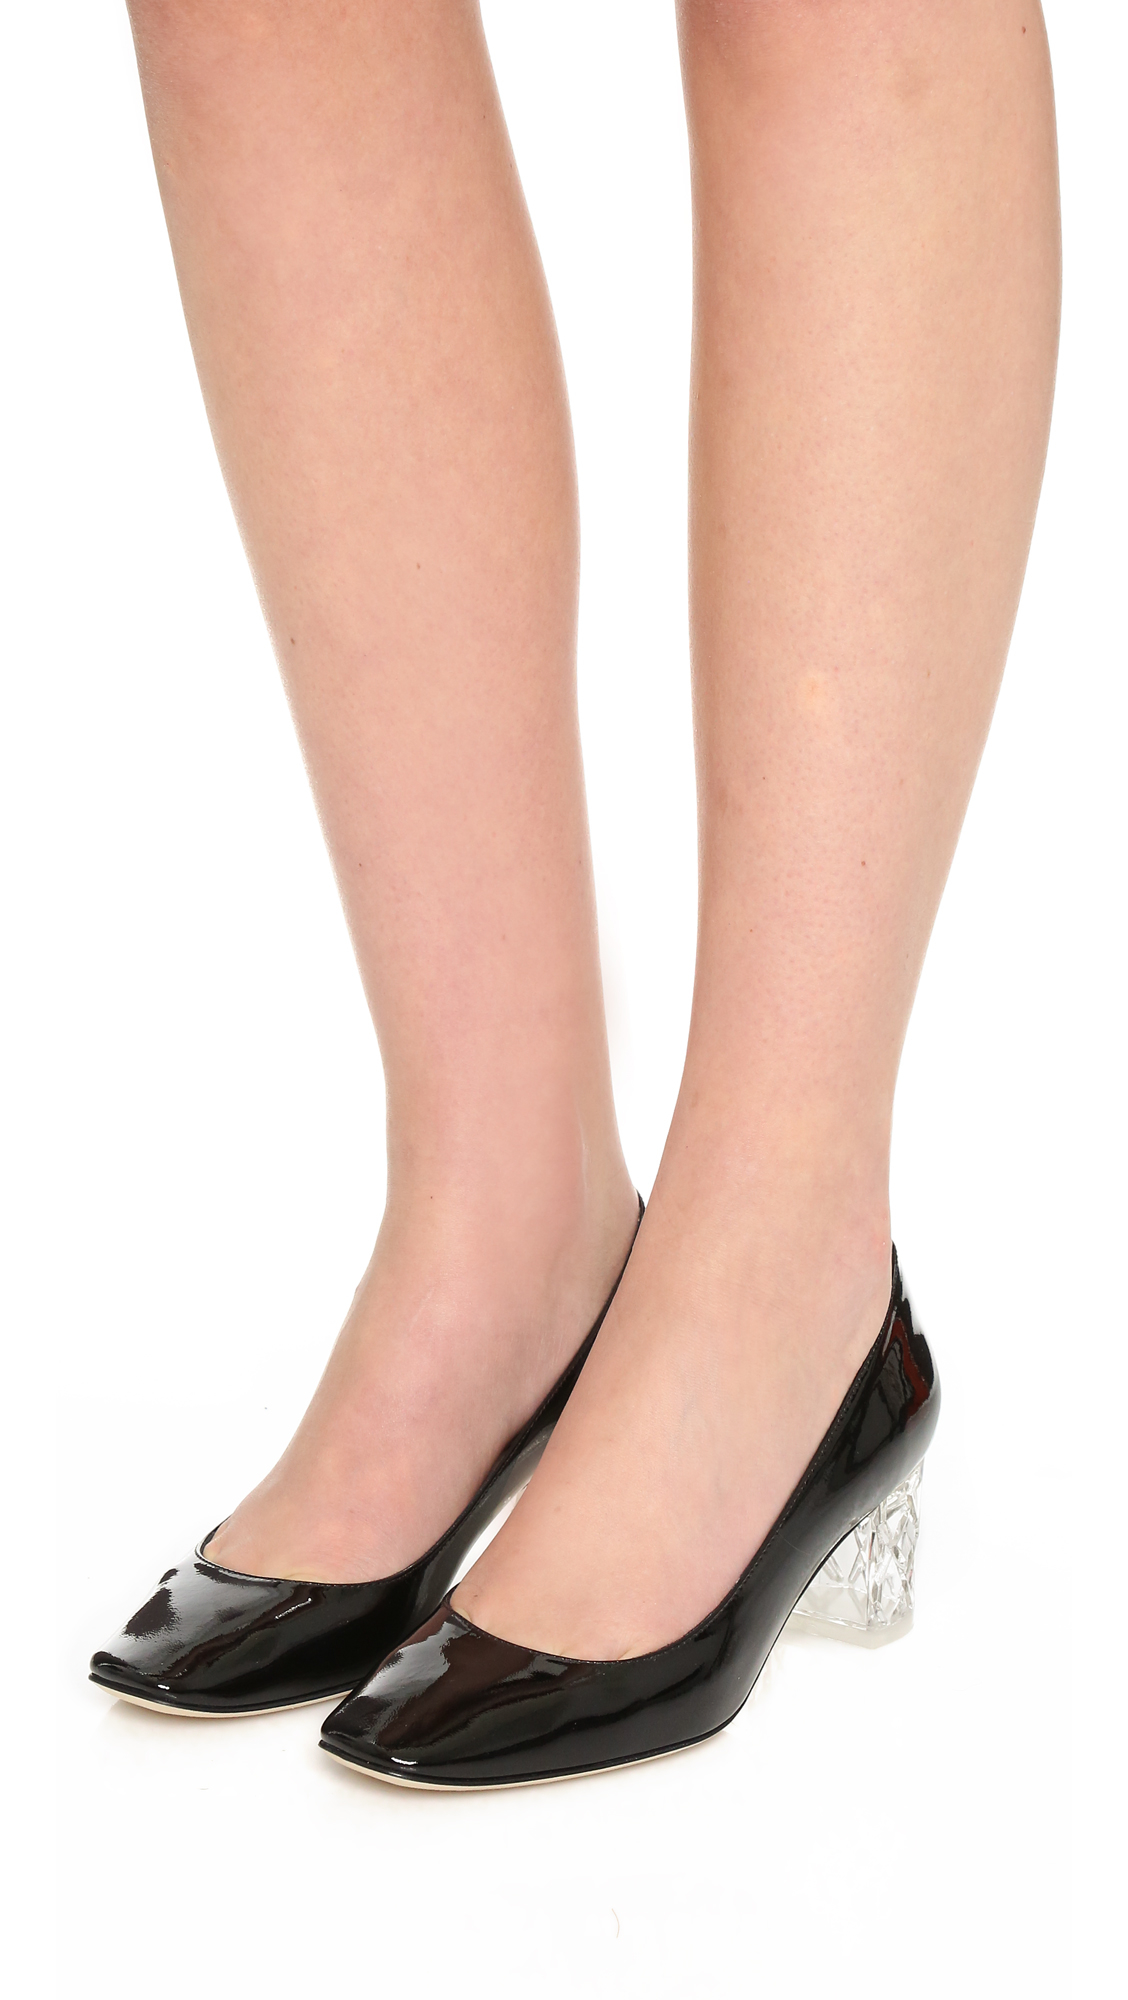 Kate Spade New York Women's Dolores Too Suede Block Heel Pumps 9pJNttMH